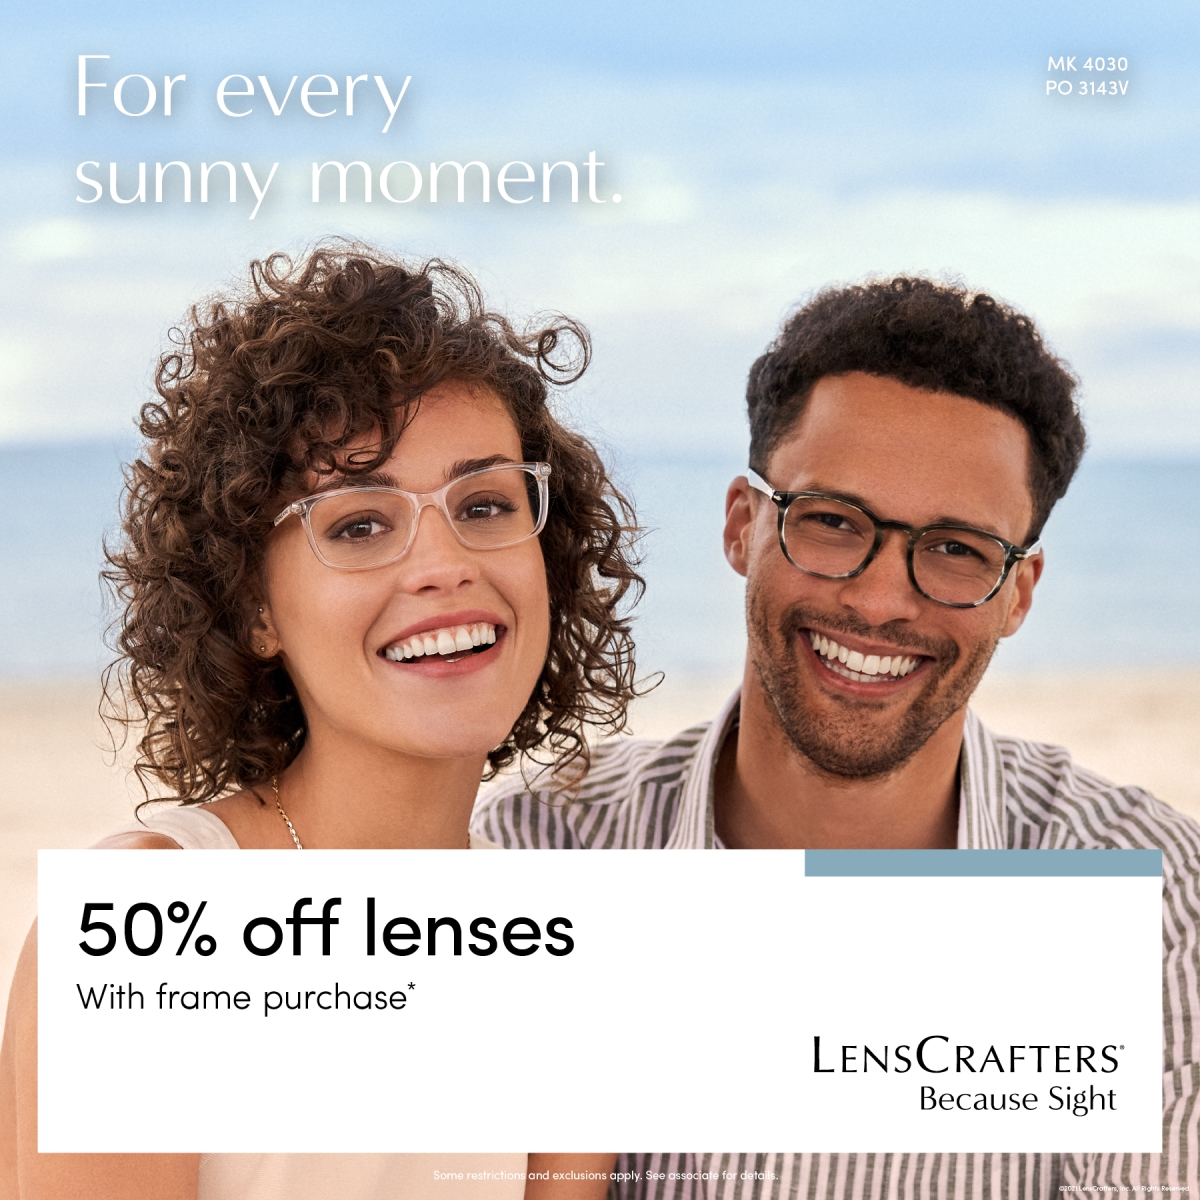 50% off lenses with frame purchase.